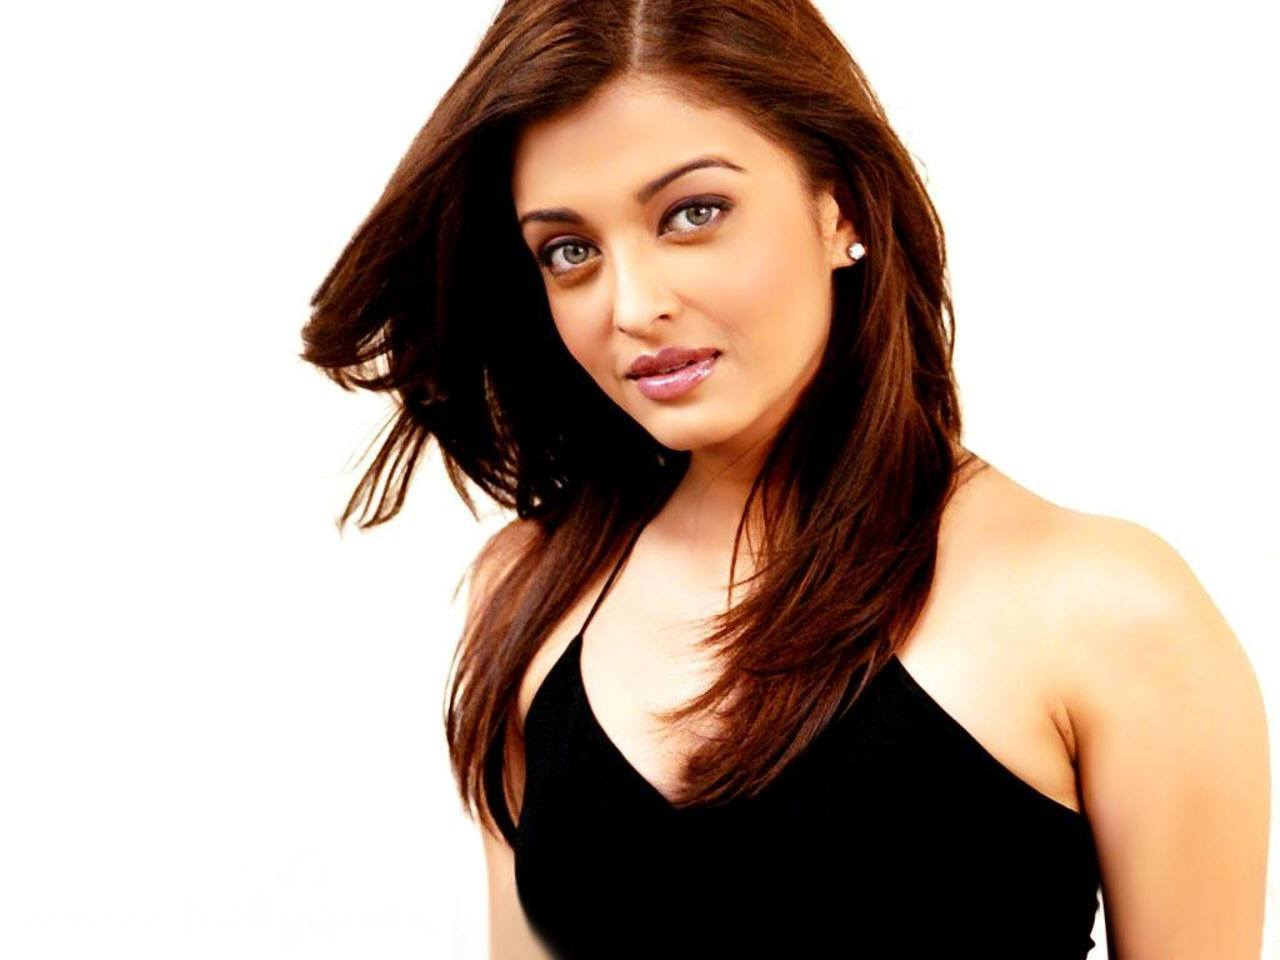 aishwarya_rai-wallpaper_2147483657